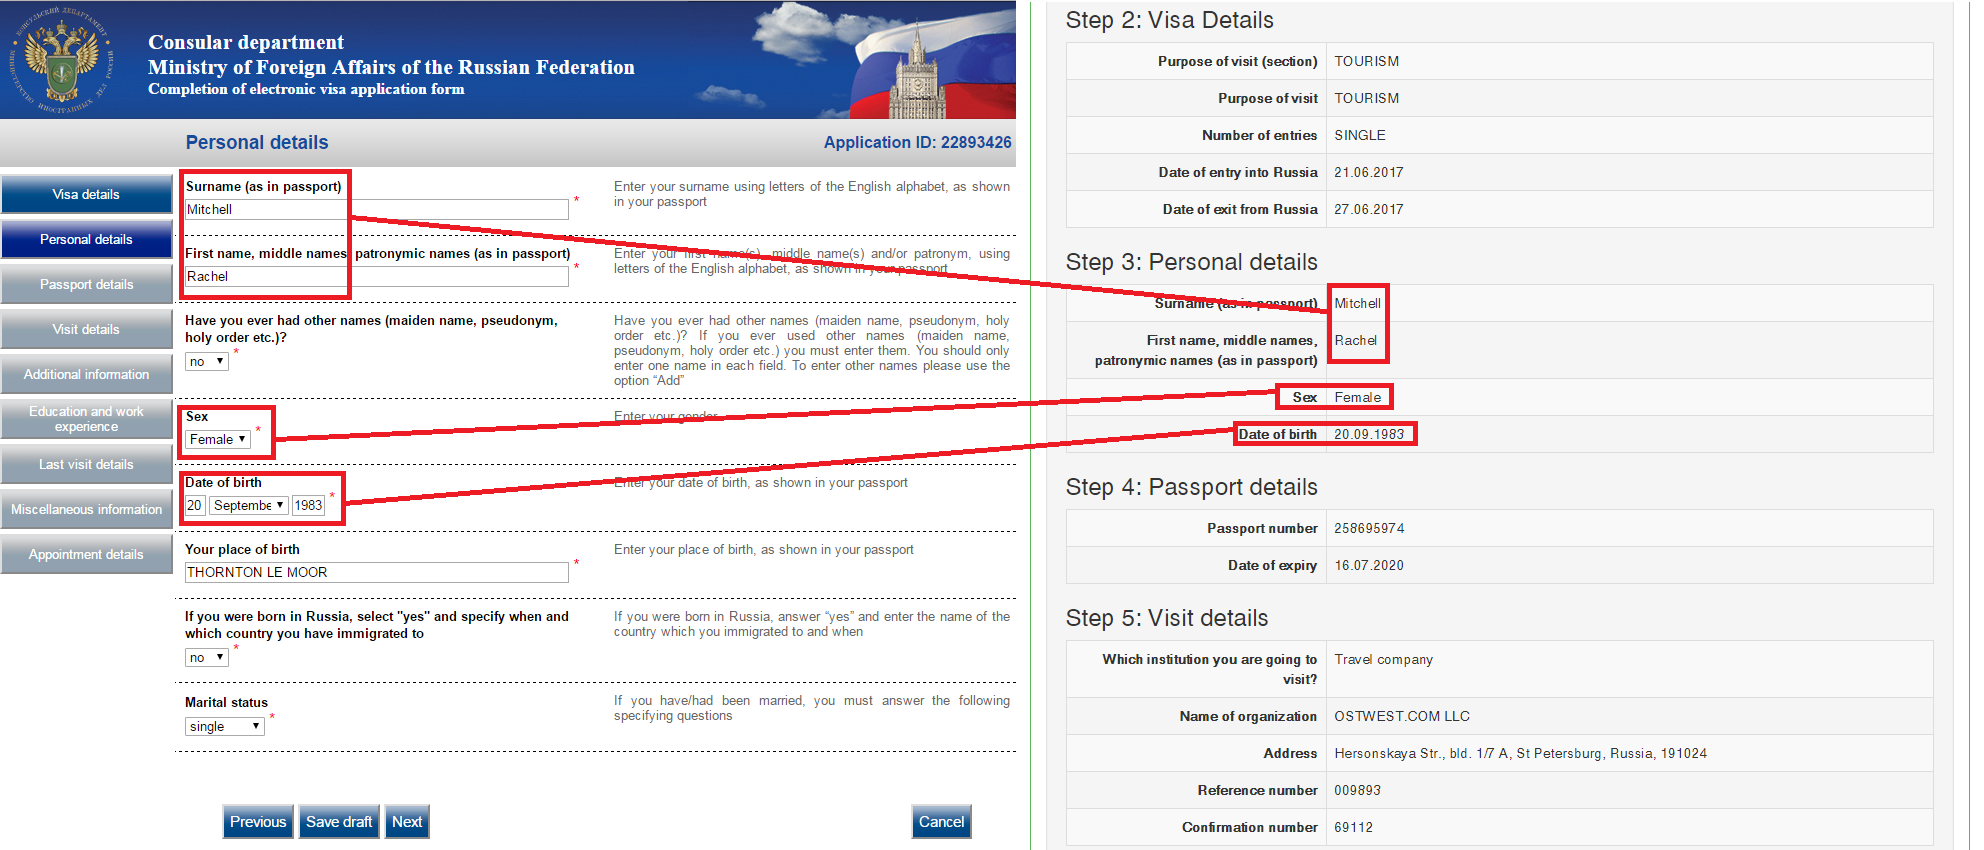 How To Get A Russian Visa In A Cost Effective Way Complete Instruction